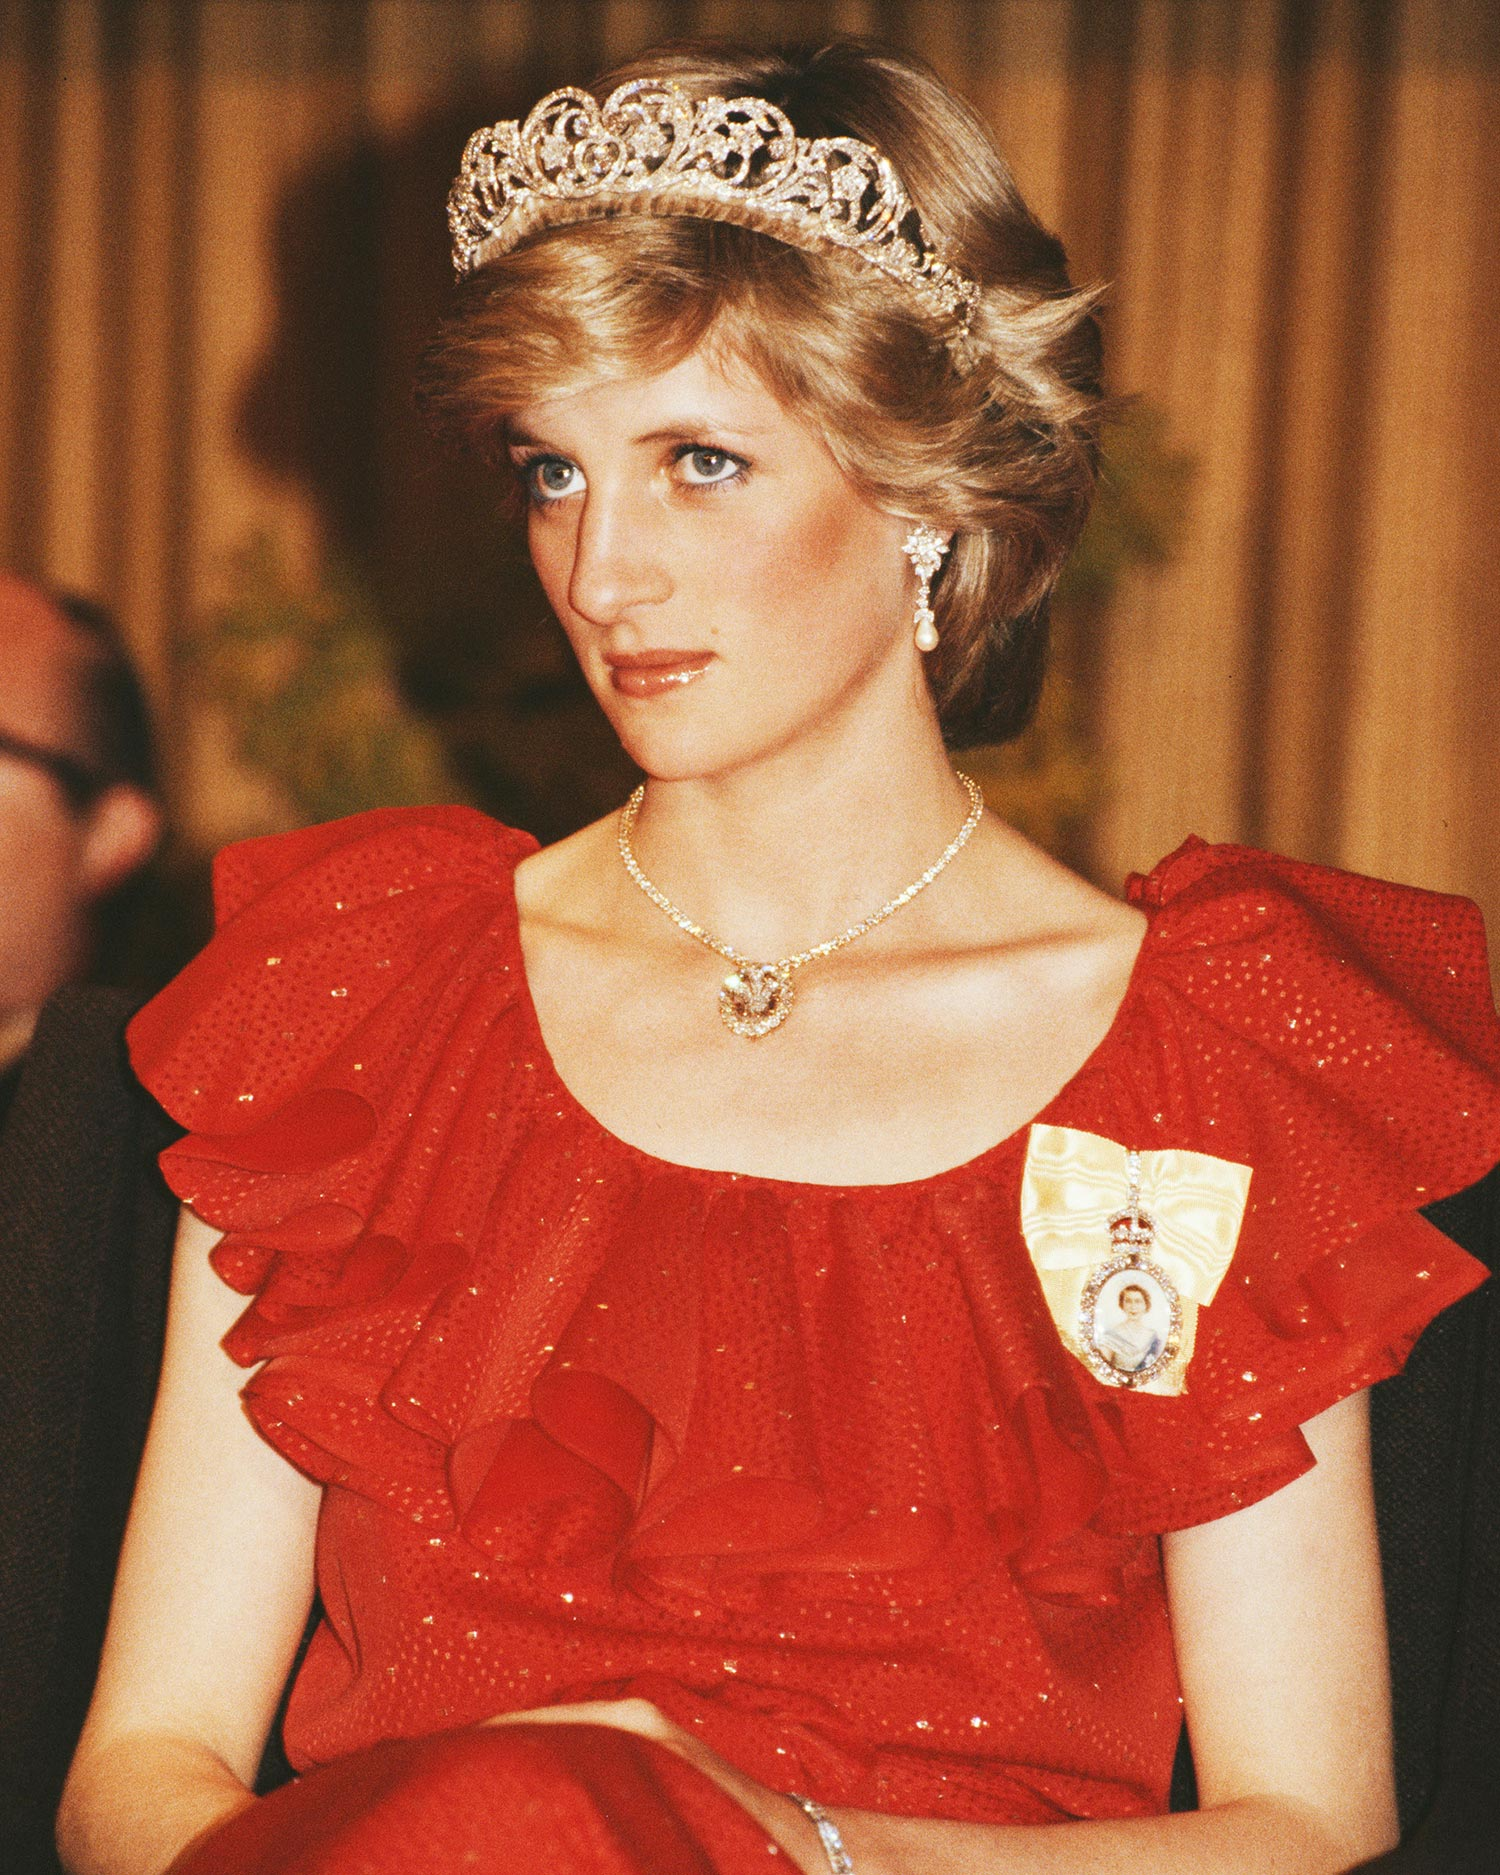 Diana, Princess of Wales (1961 - 1997) wearing a red Bruce Oldfield gown to a state reception at the Wrest Point Federal hotel in Hobart, Tasmania, 30th March 1983. She is wearing the Spencer family tiara and the badge of the Royal Family Order of Elizabeth II, and has restyled the Prince of Wales feathers brooch as a necklace. Her pearl and diamond earrings were a gift from the Emir of Qatar. (Photo by Tim Graham Photo Library via Getty Images)